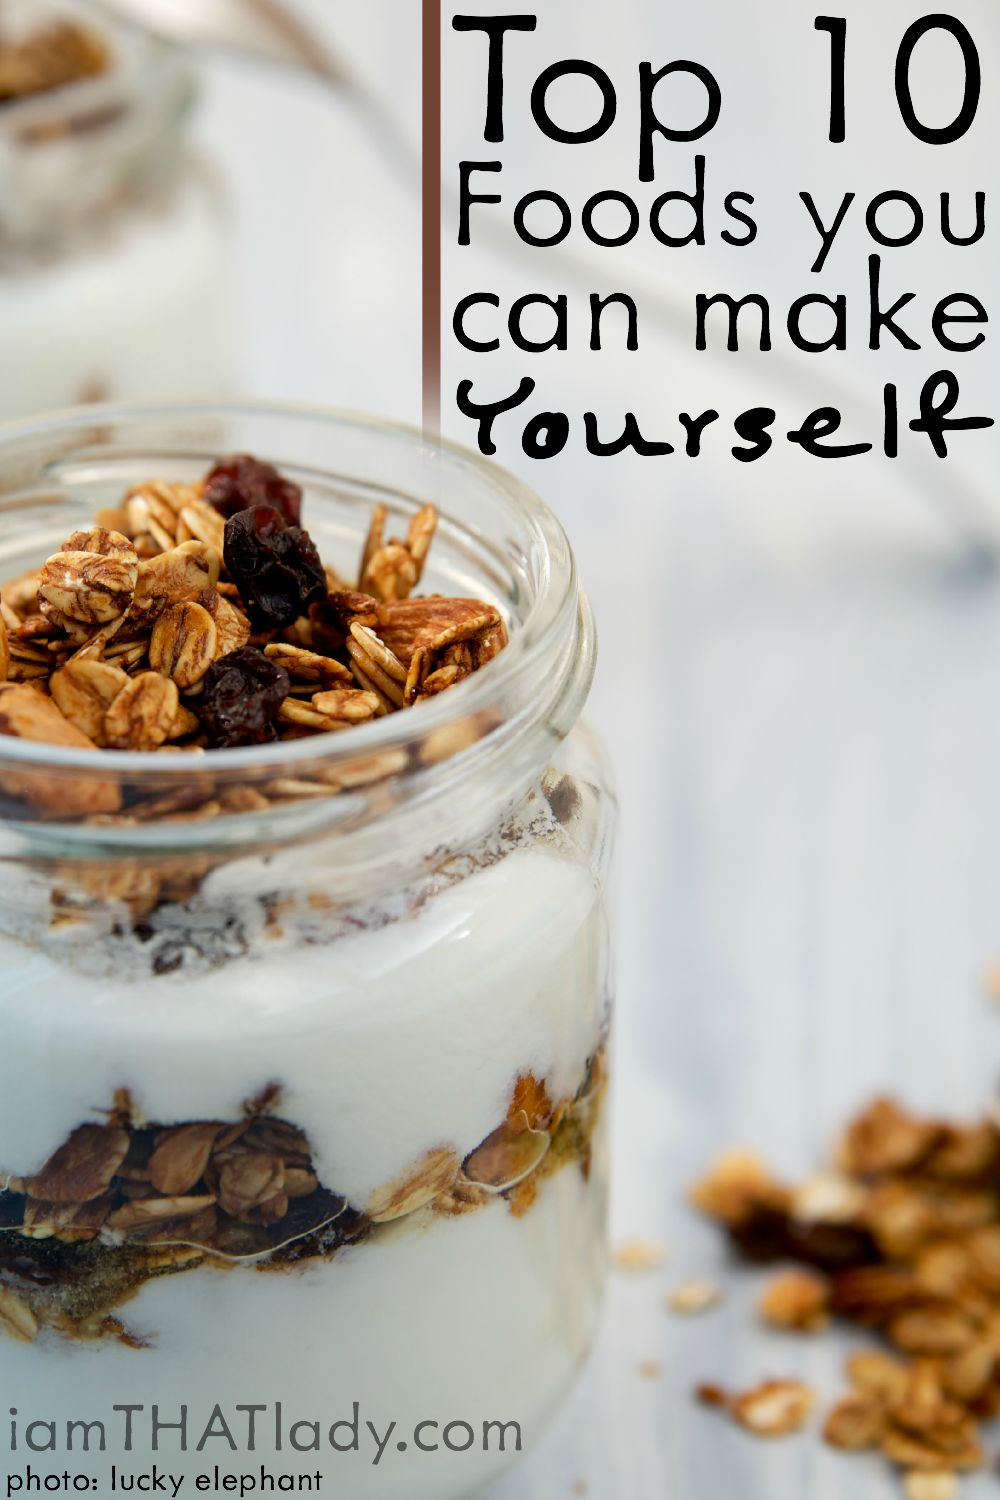 Trying to start making more foods at home? Check out these Top 10 Foods you can Make Yourself very easily!